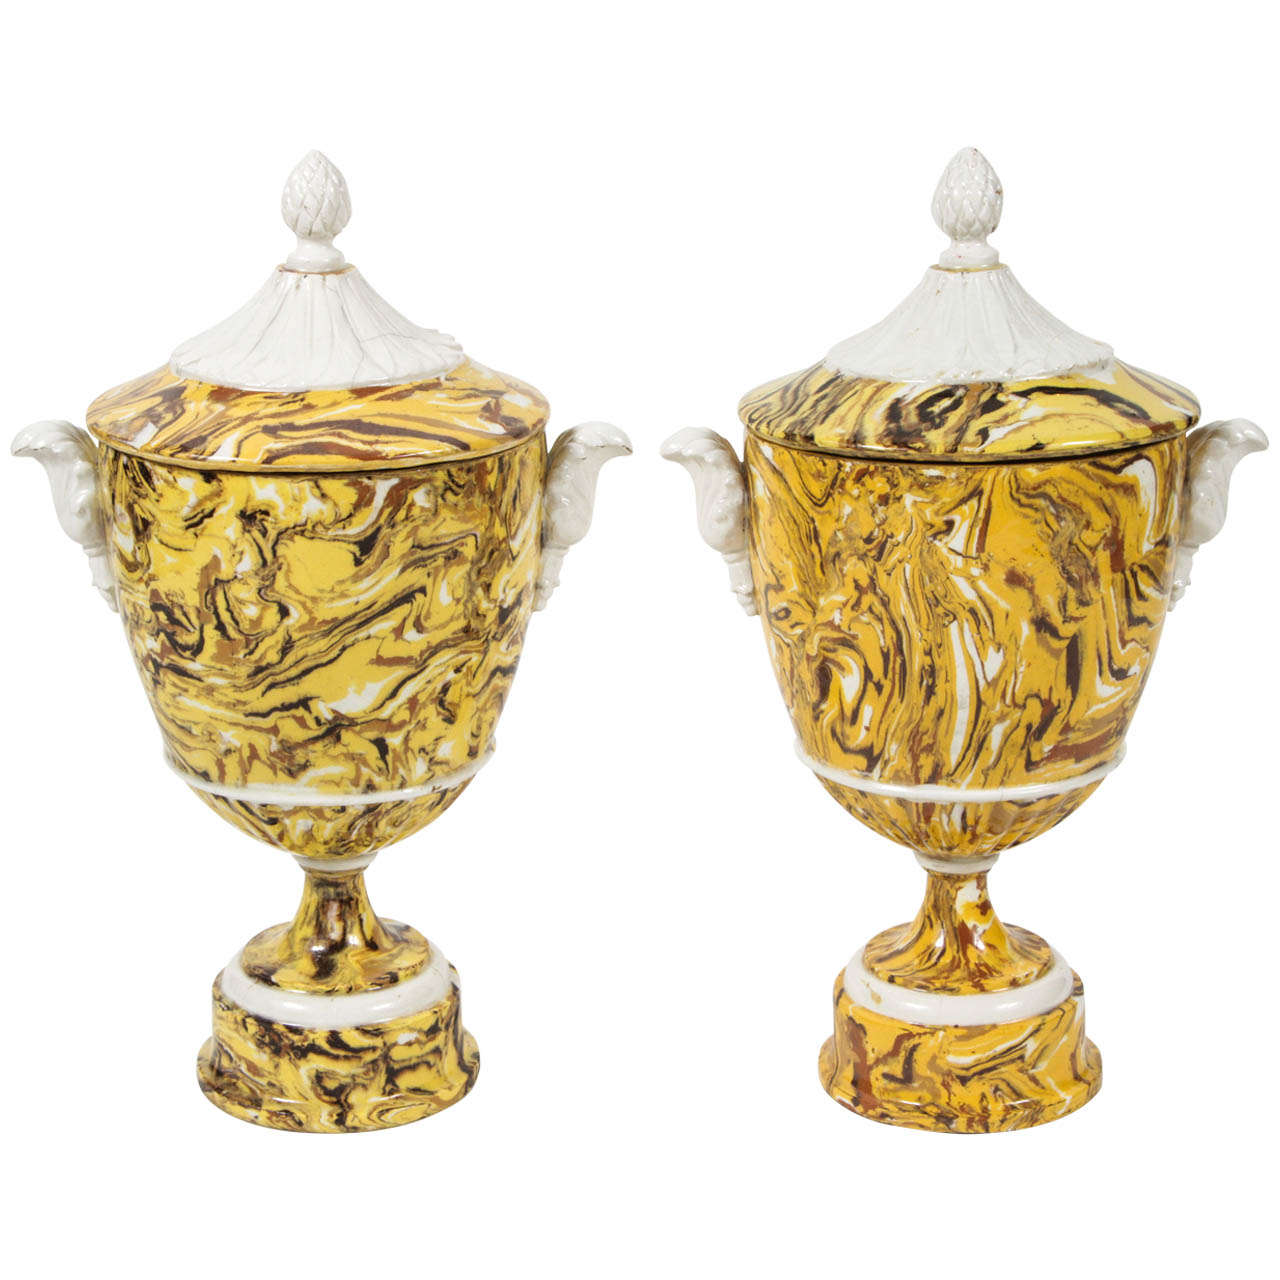 Pair of Lidded Terre Melee Urns For Sale